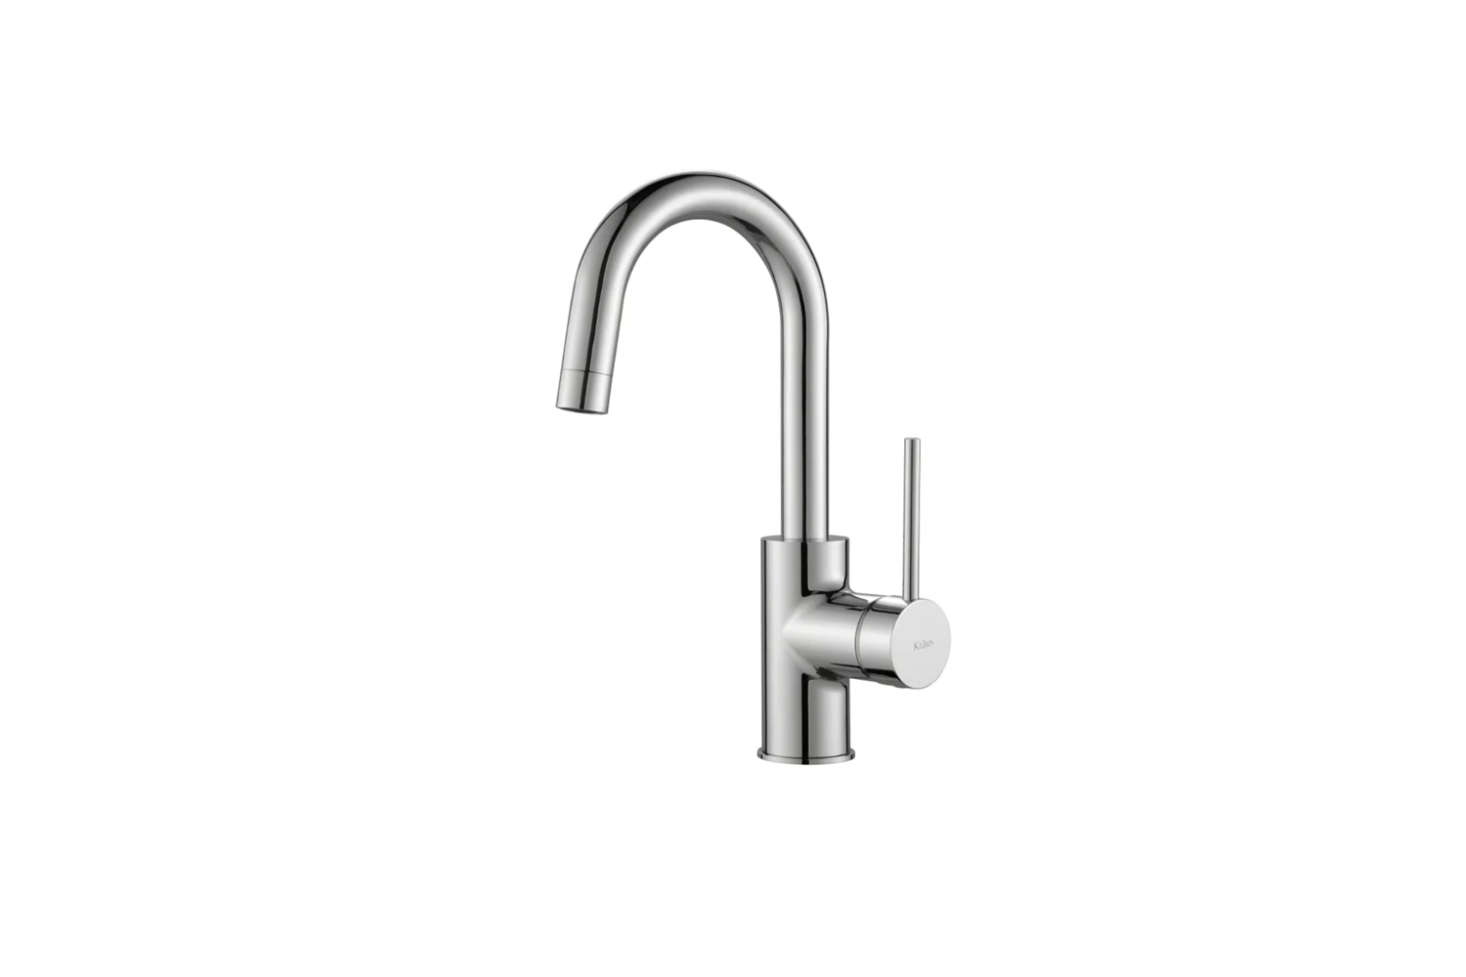 The Kraus Oletto Single Lever Kitchen Bar Faucet (KPF-00CH), in chrome and spot-free stainless steel, is $9.95 at Build.com.